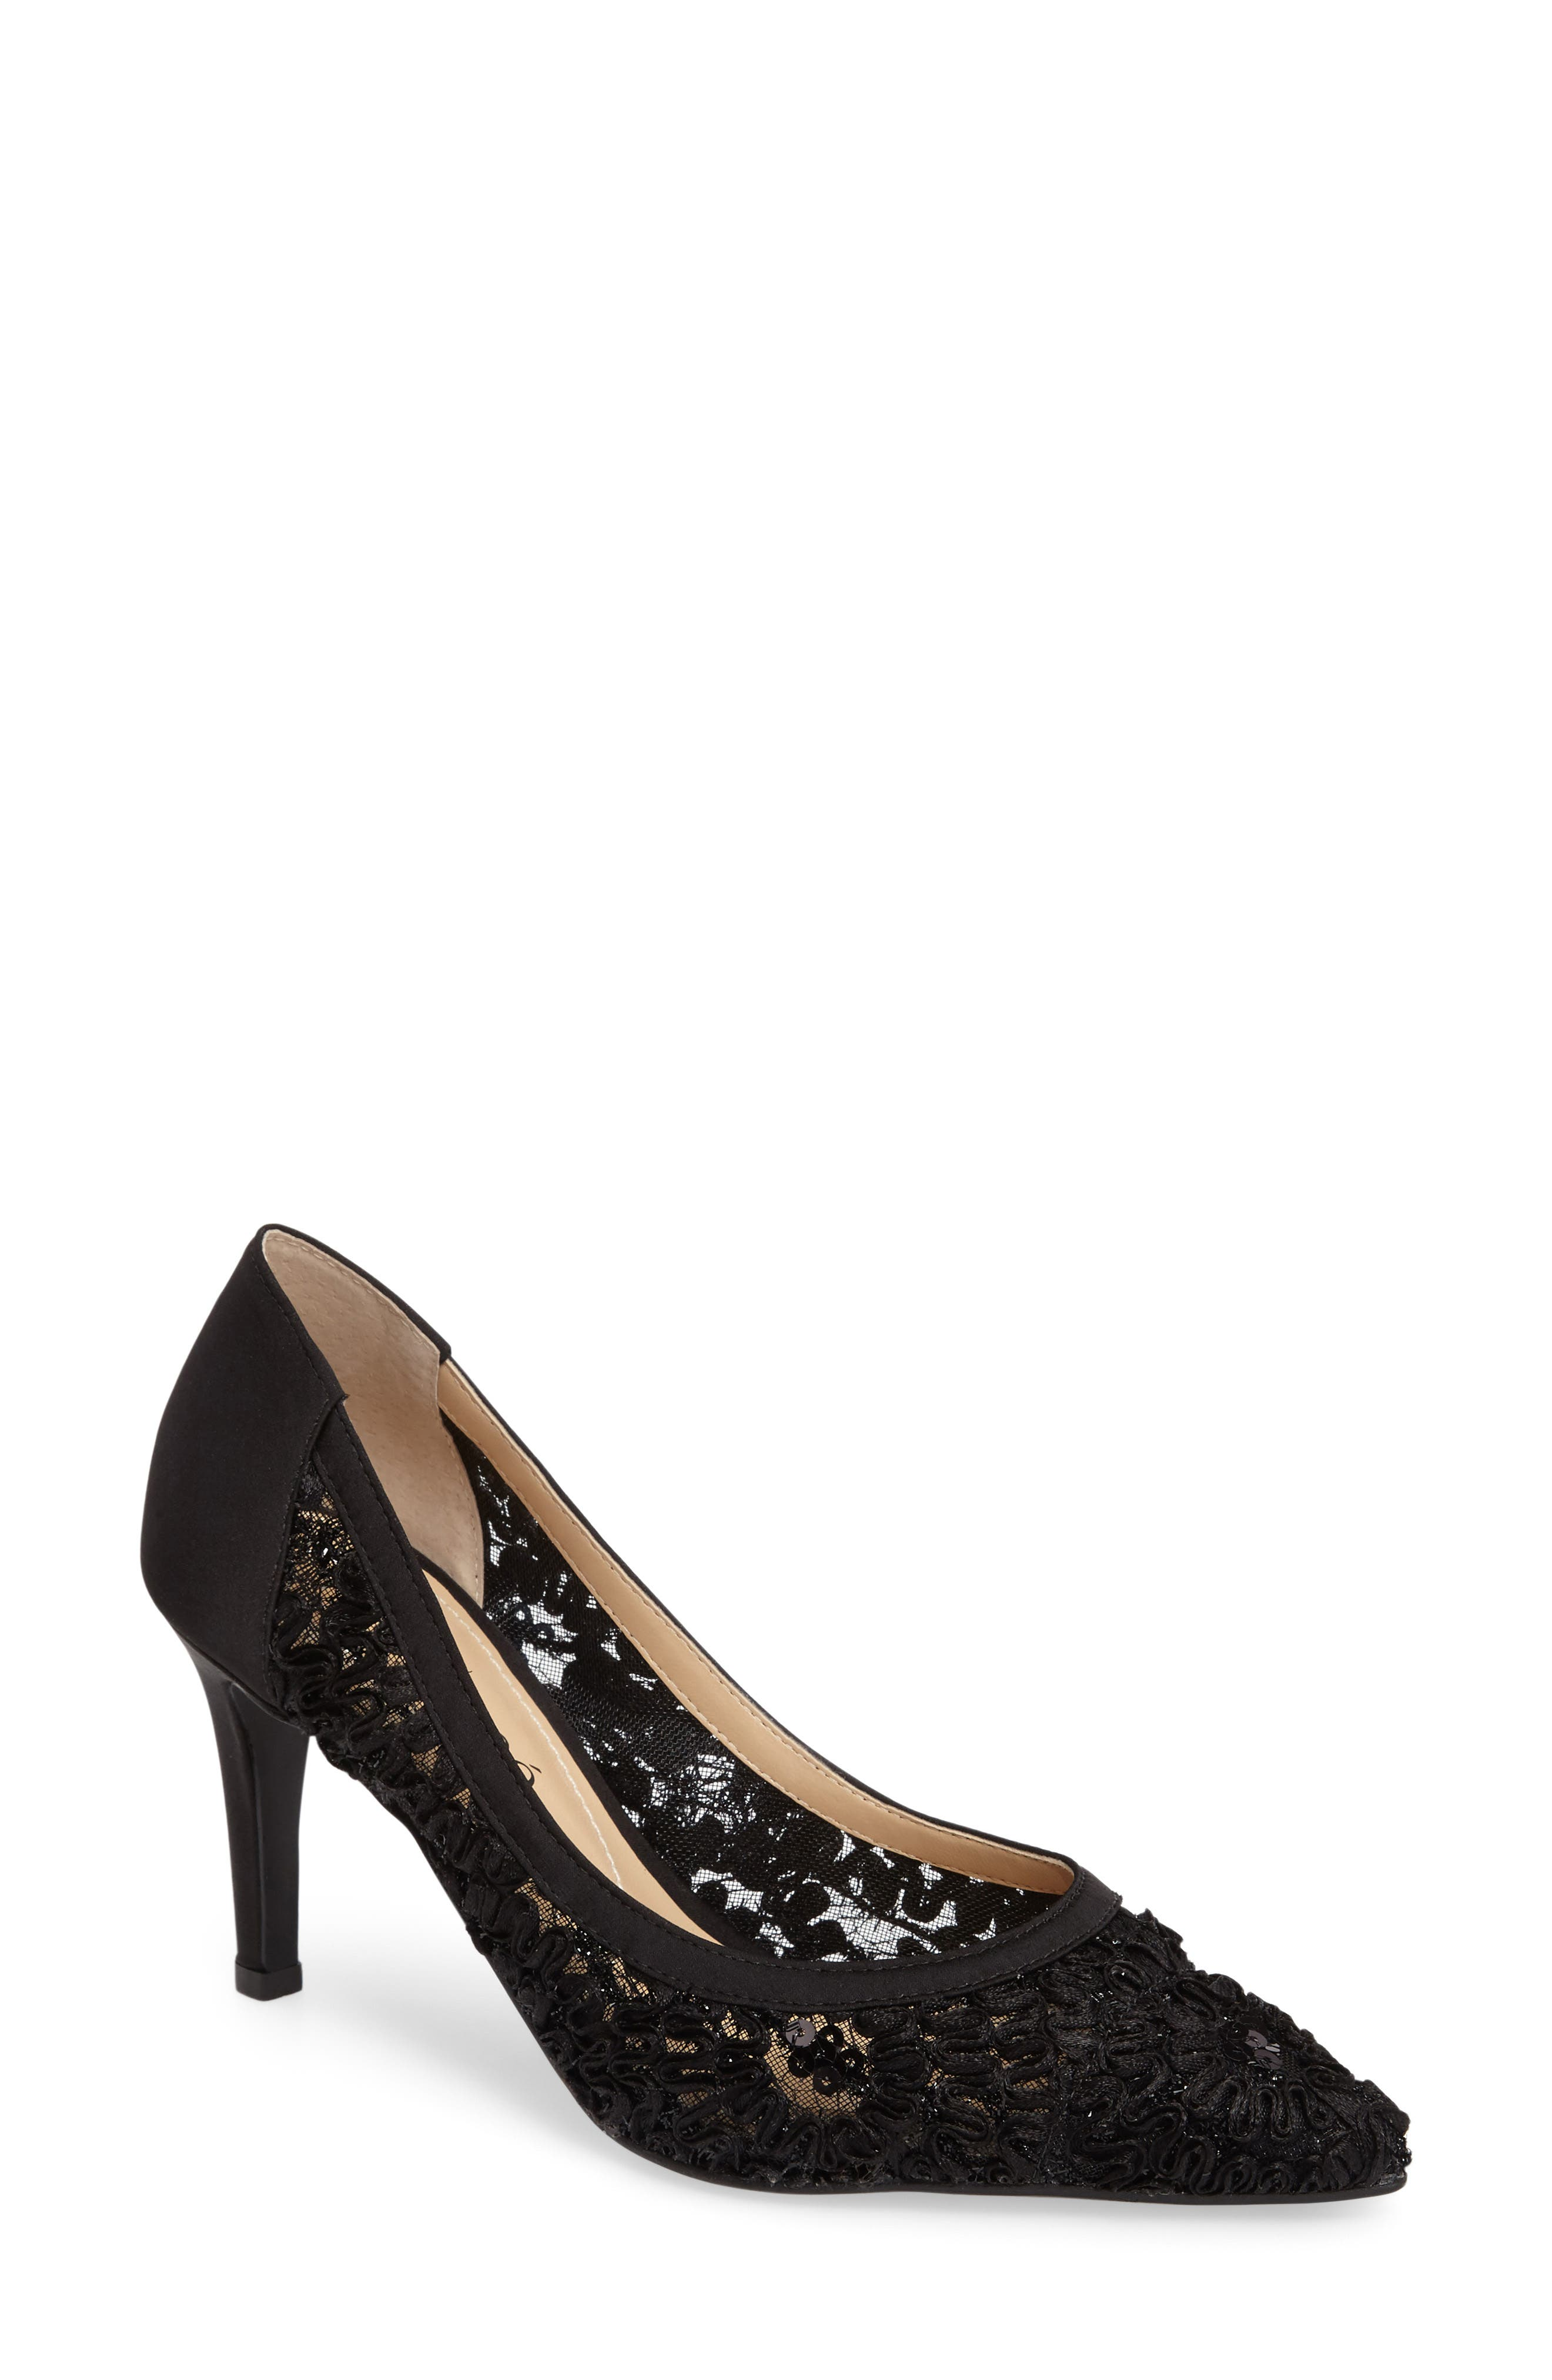 Camellia Pointy Toe Pump,                             Main thumbnail 1, color,                             BLACK LACE FABRIC